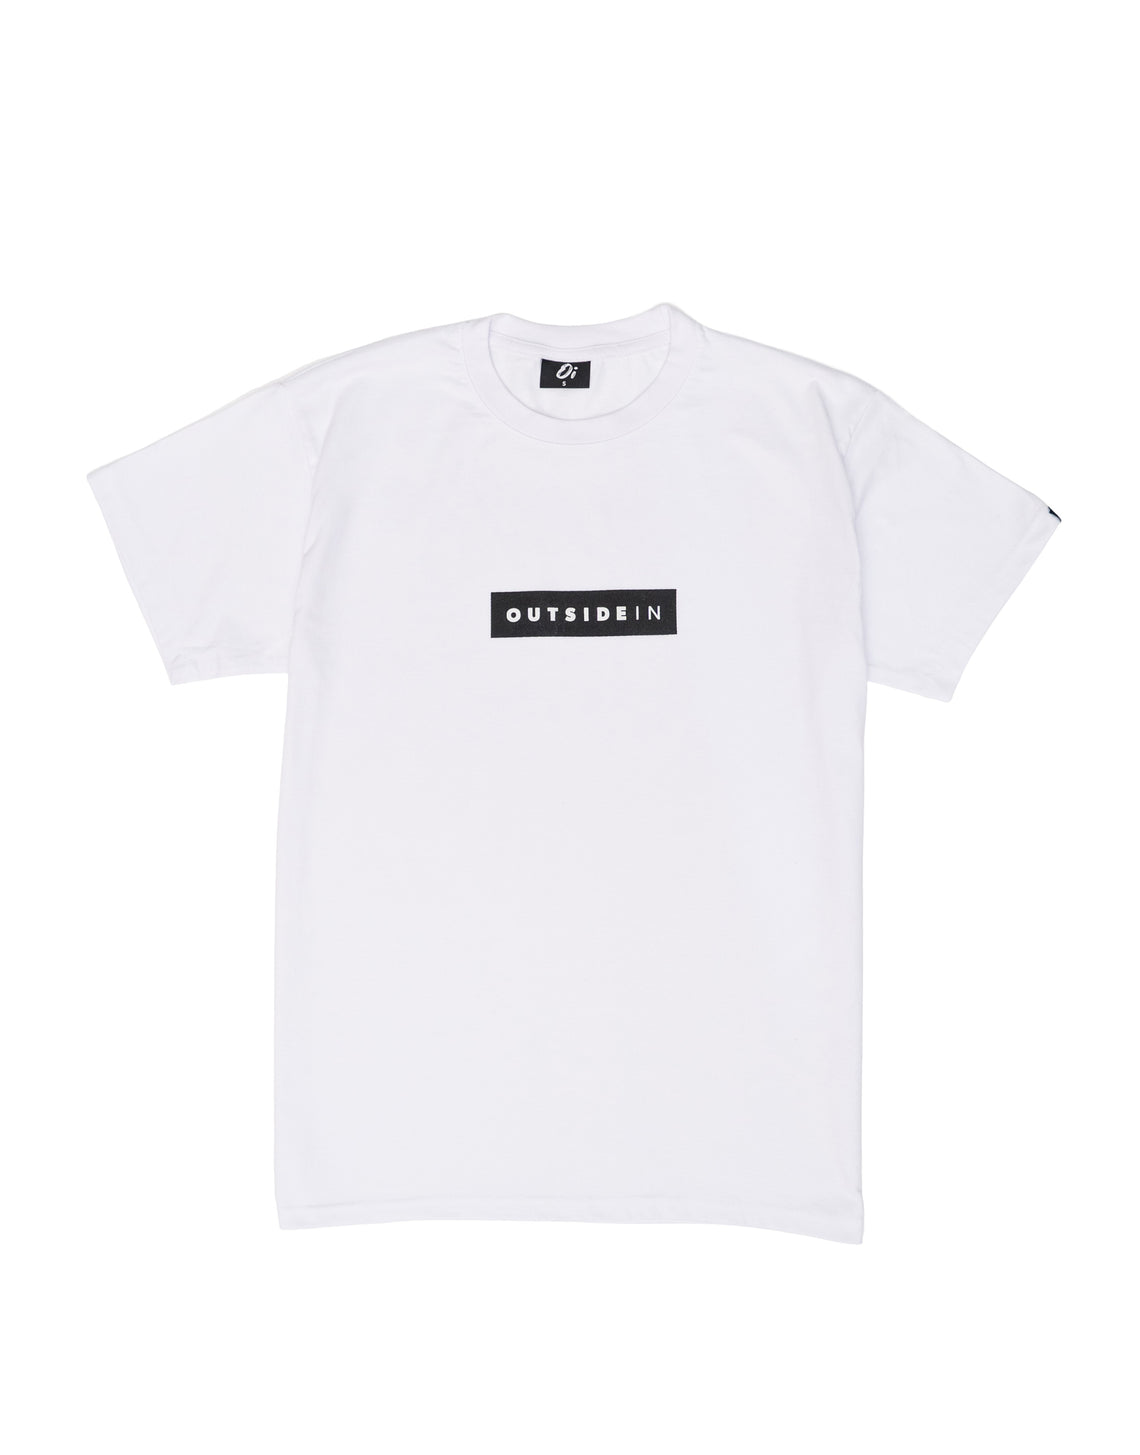 Essential White Block T-Shirt - OutsideIn